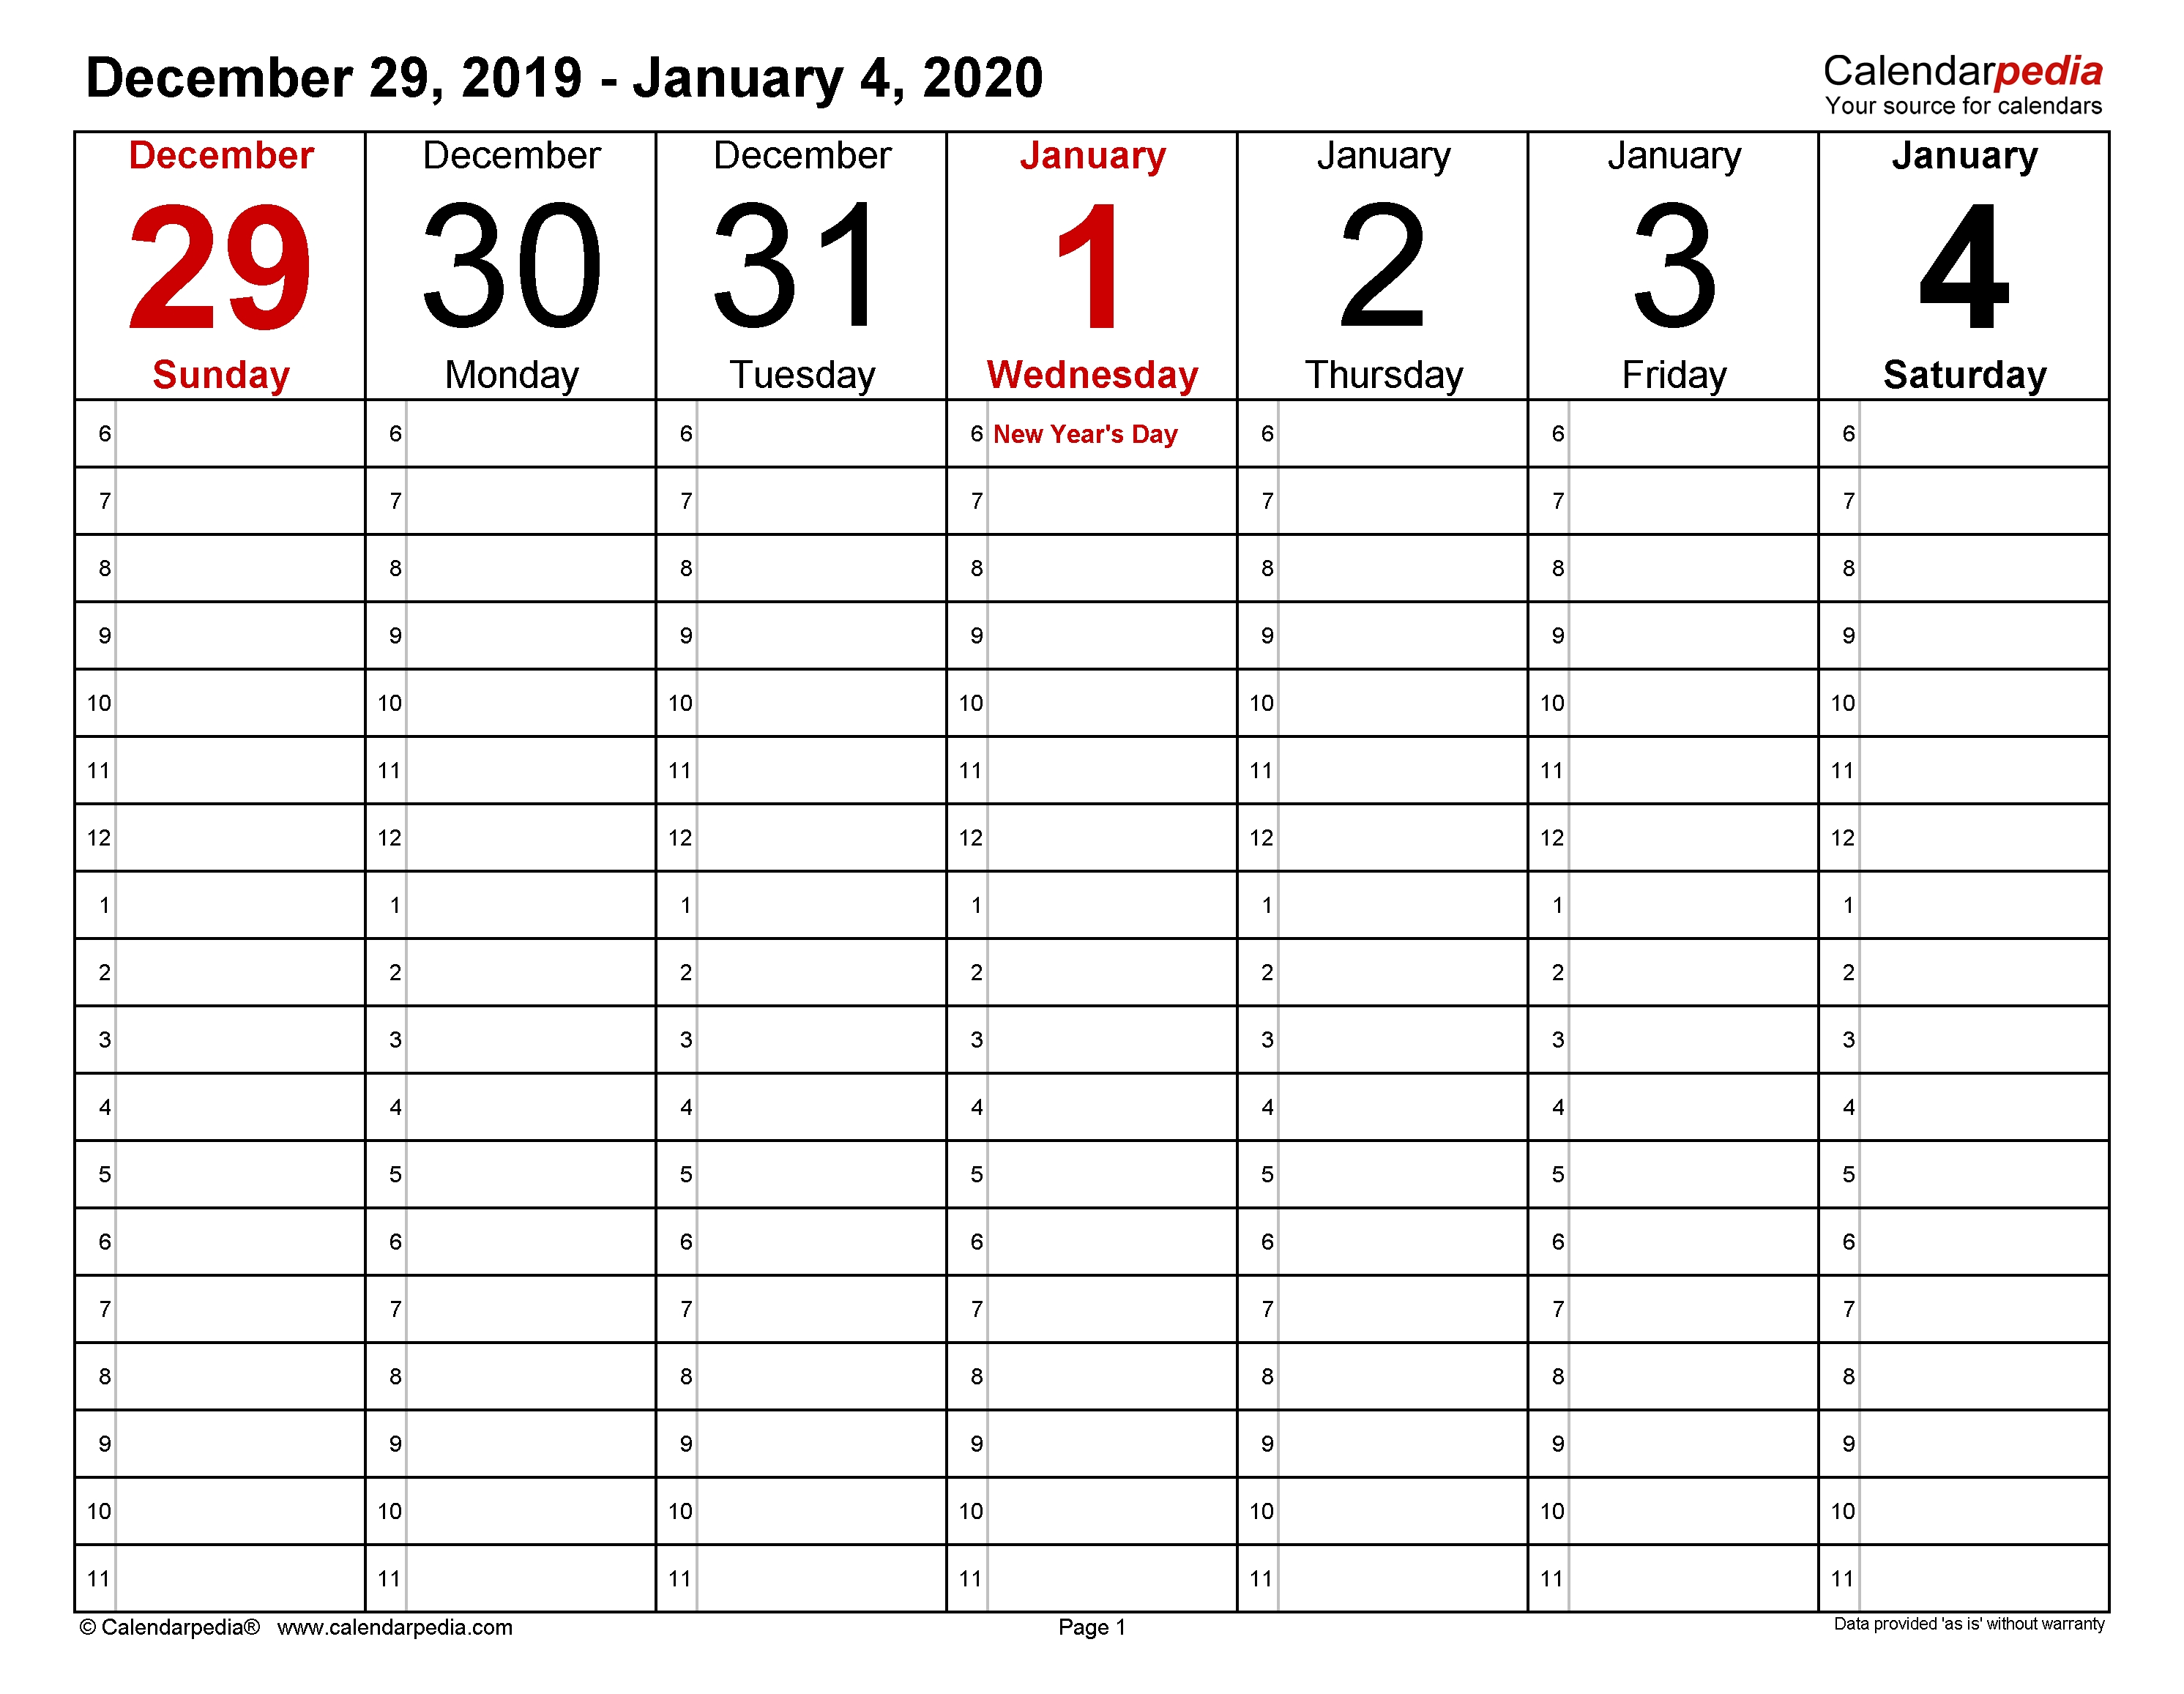 Weekly Calendars 2020 For Word - 12 Free Printable Templates-Weekly Hourly Template May Through September 2020